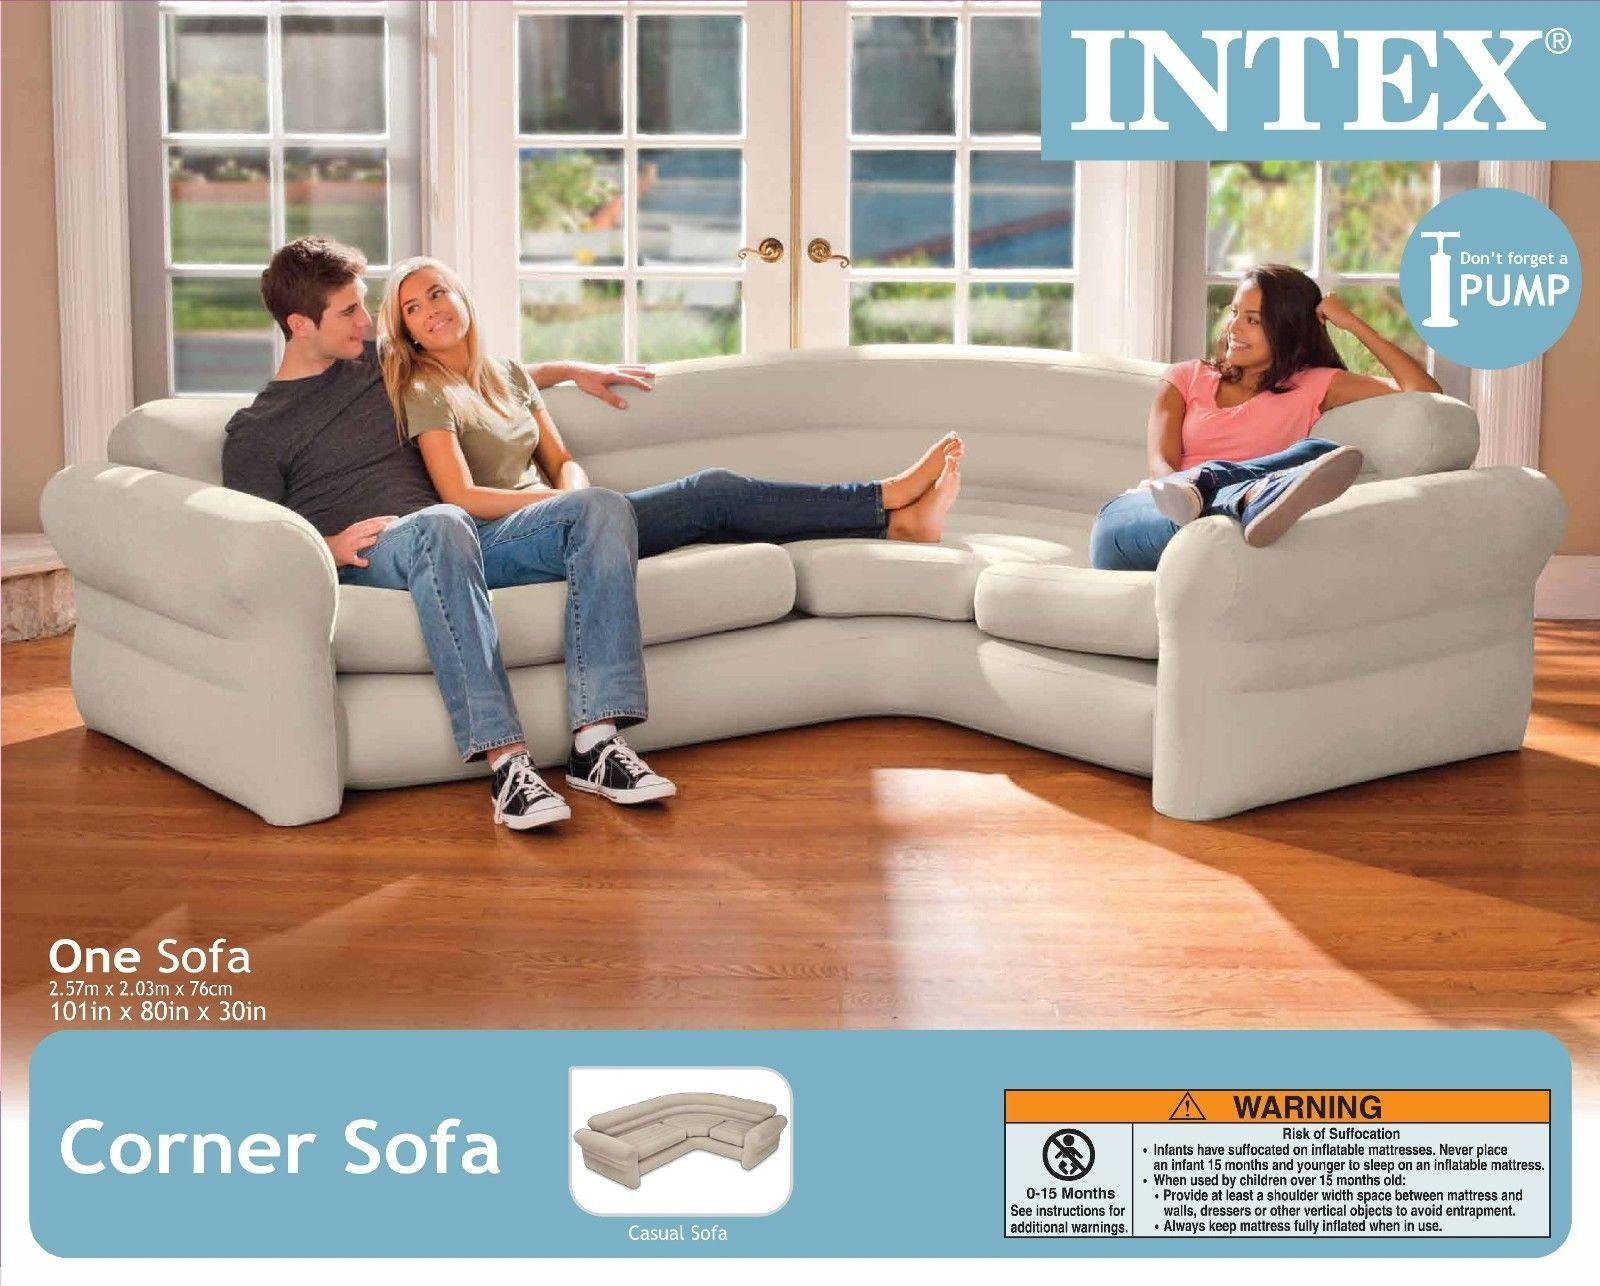 Intex Inflatable Corner Sofa Portable Modern Contemporary Air intended for Intex Air Couches